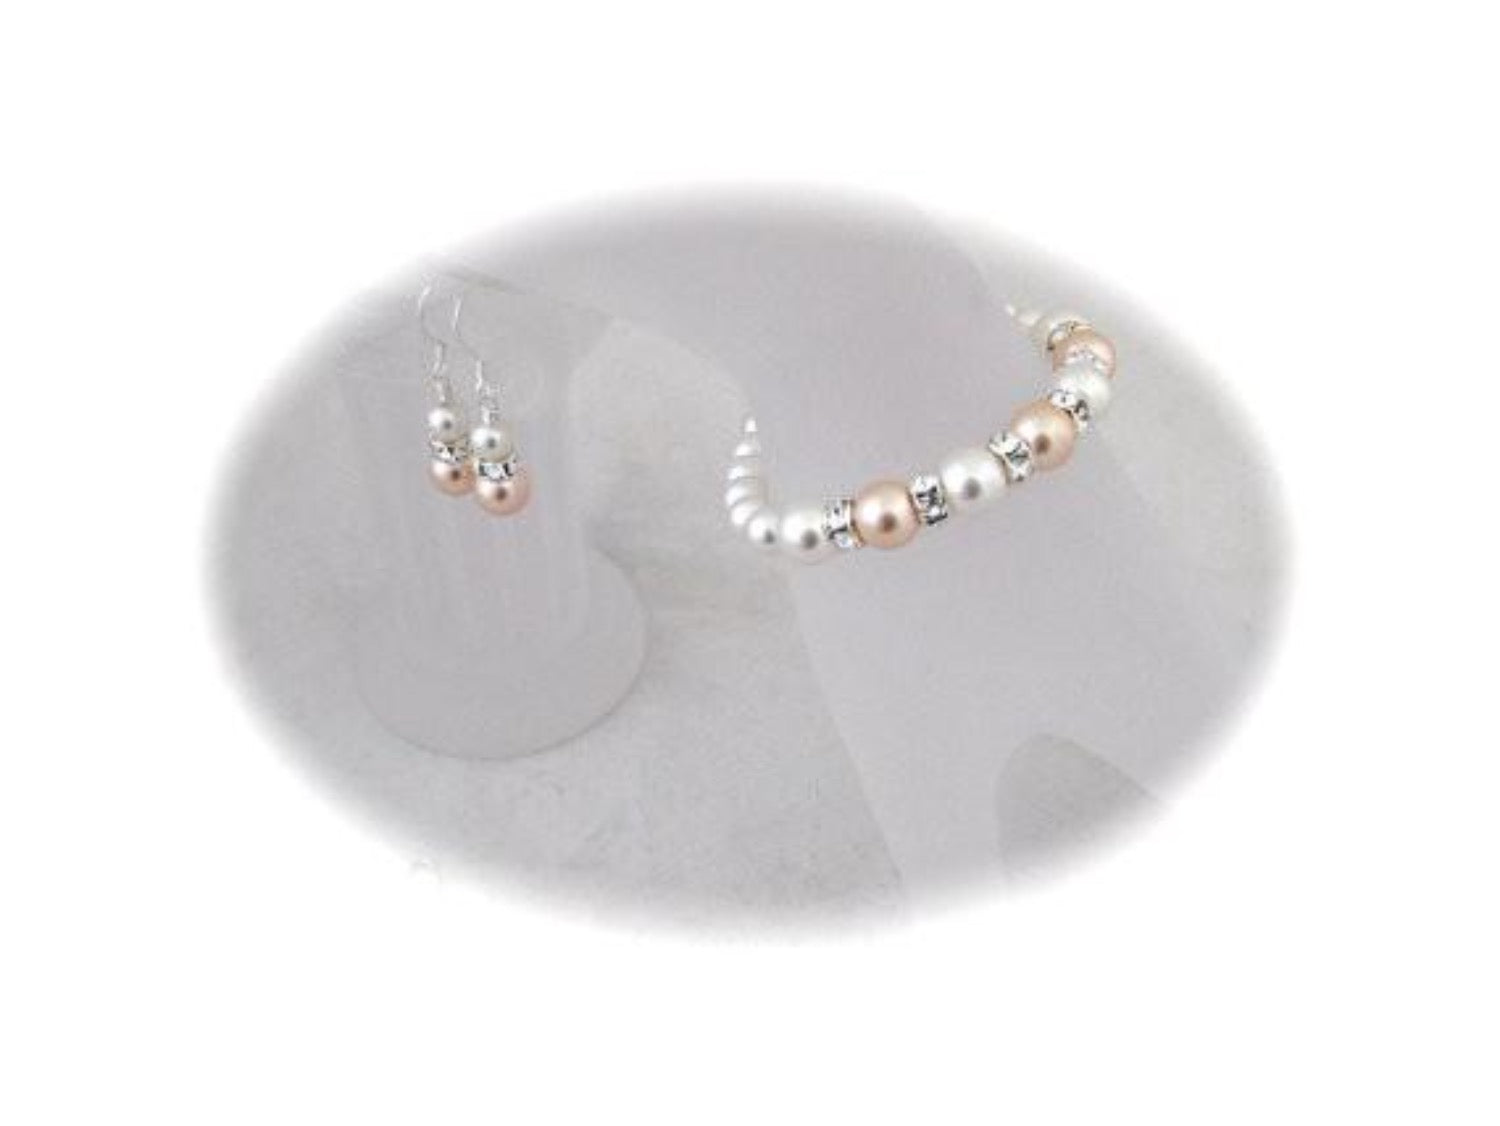 Peach and White Wedding Bracelet and Earrings Sets for Bridesmaids - Clairesbridal